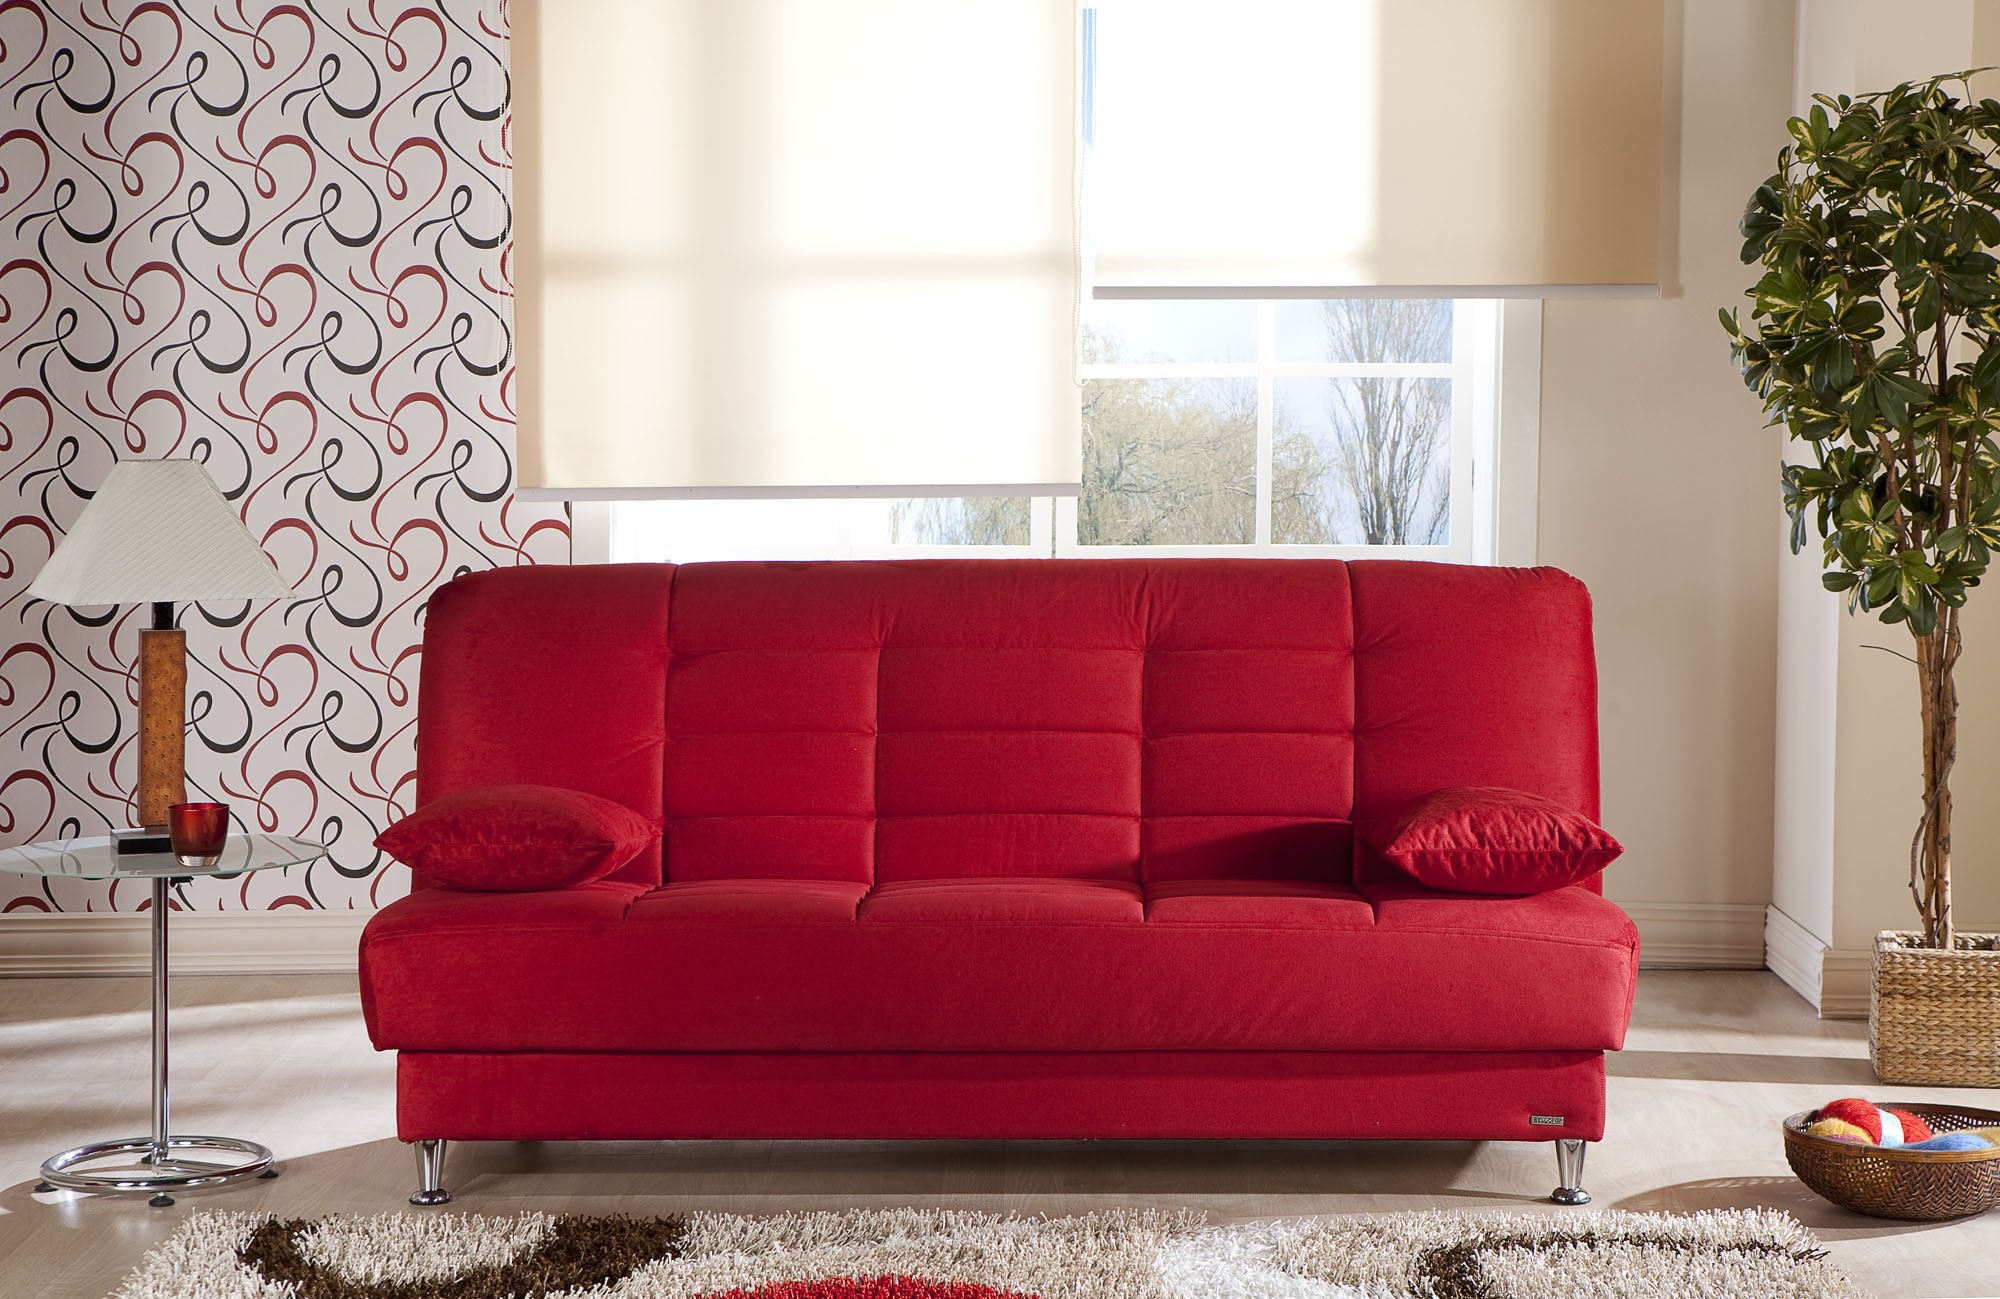 Modern Furniture Vegas vegas 3 seat sleeper rainbow redsunset buy from nova interiors